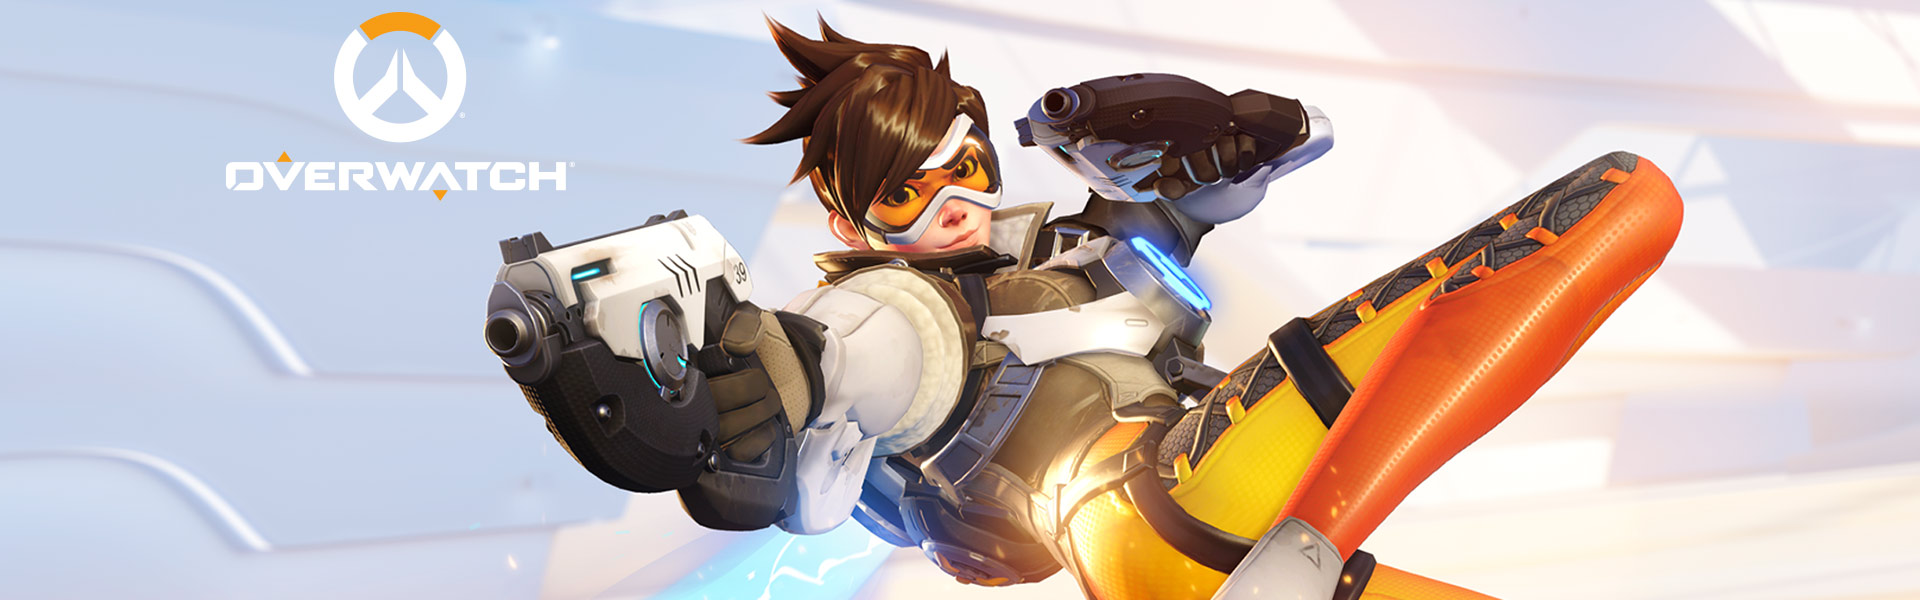 Overwatch, Front view of Overwatch hero Tracer holding her pistols out